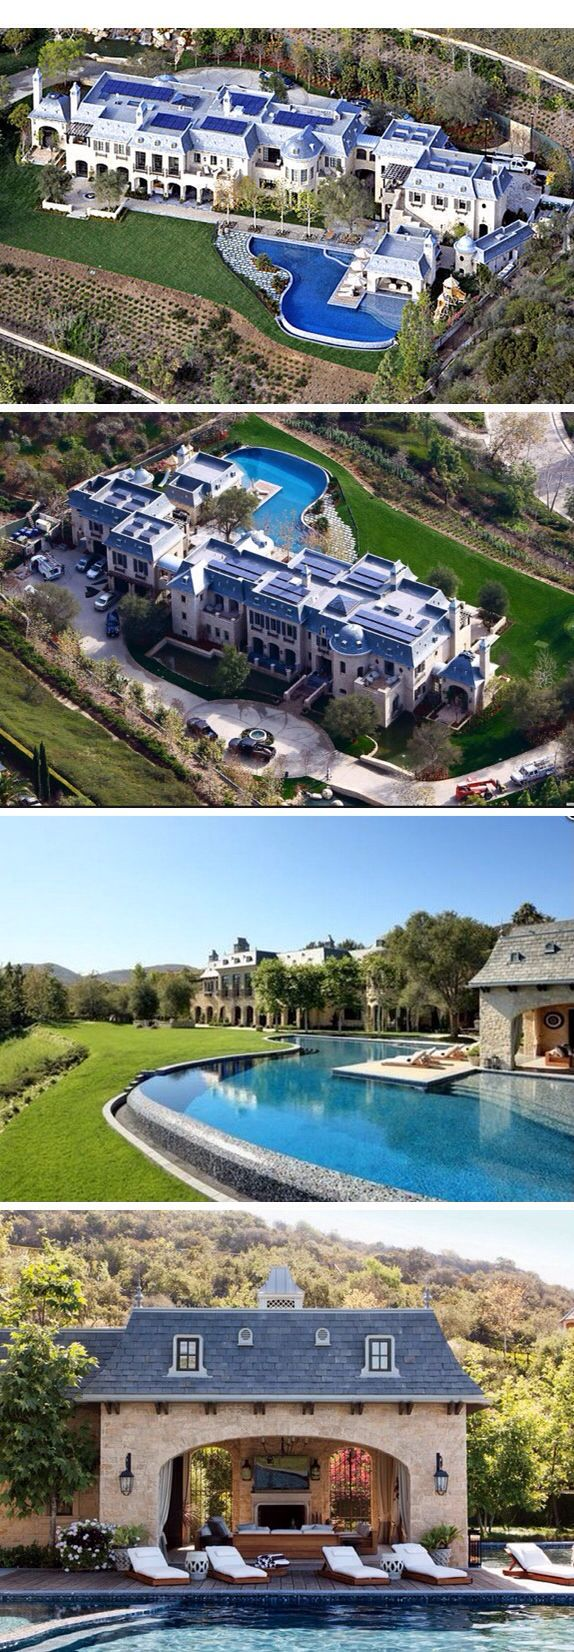 Gisele-bundchen-tom-brady-lists-their home- from the opulentlifestyle@Luxurydotcom:: - Instagram: @AurumForHer